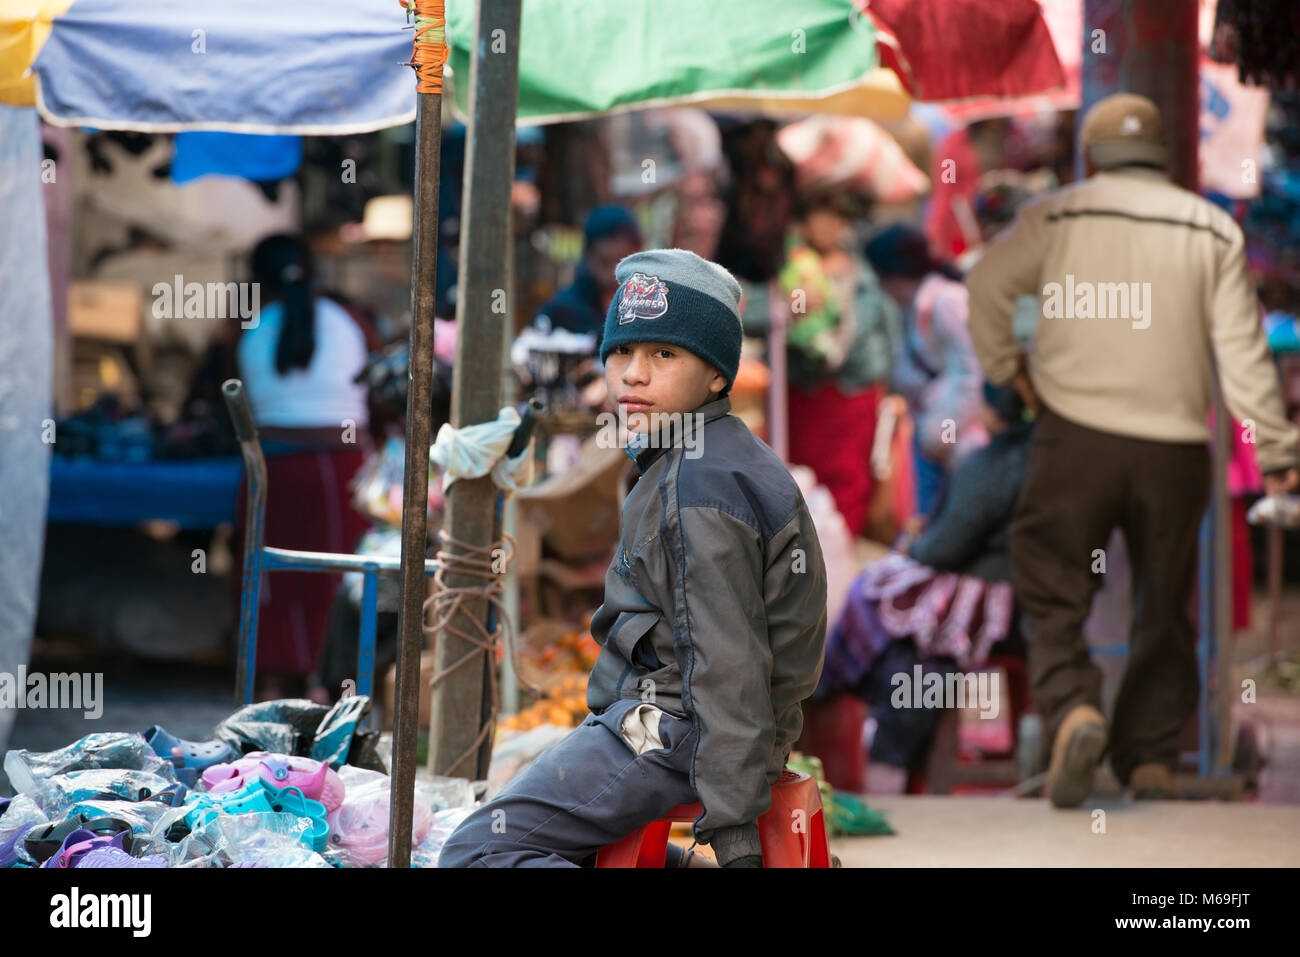 A young indigenous ethnic Ixil Maya boy selling shoes in the market. San Juan Cotzal, Ixil Triangle, Guatemala. - Stock Image